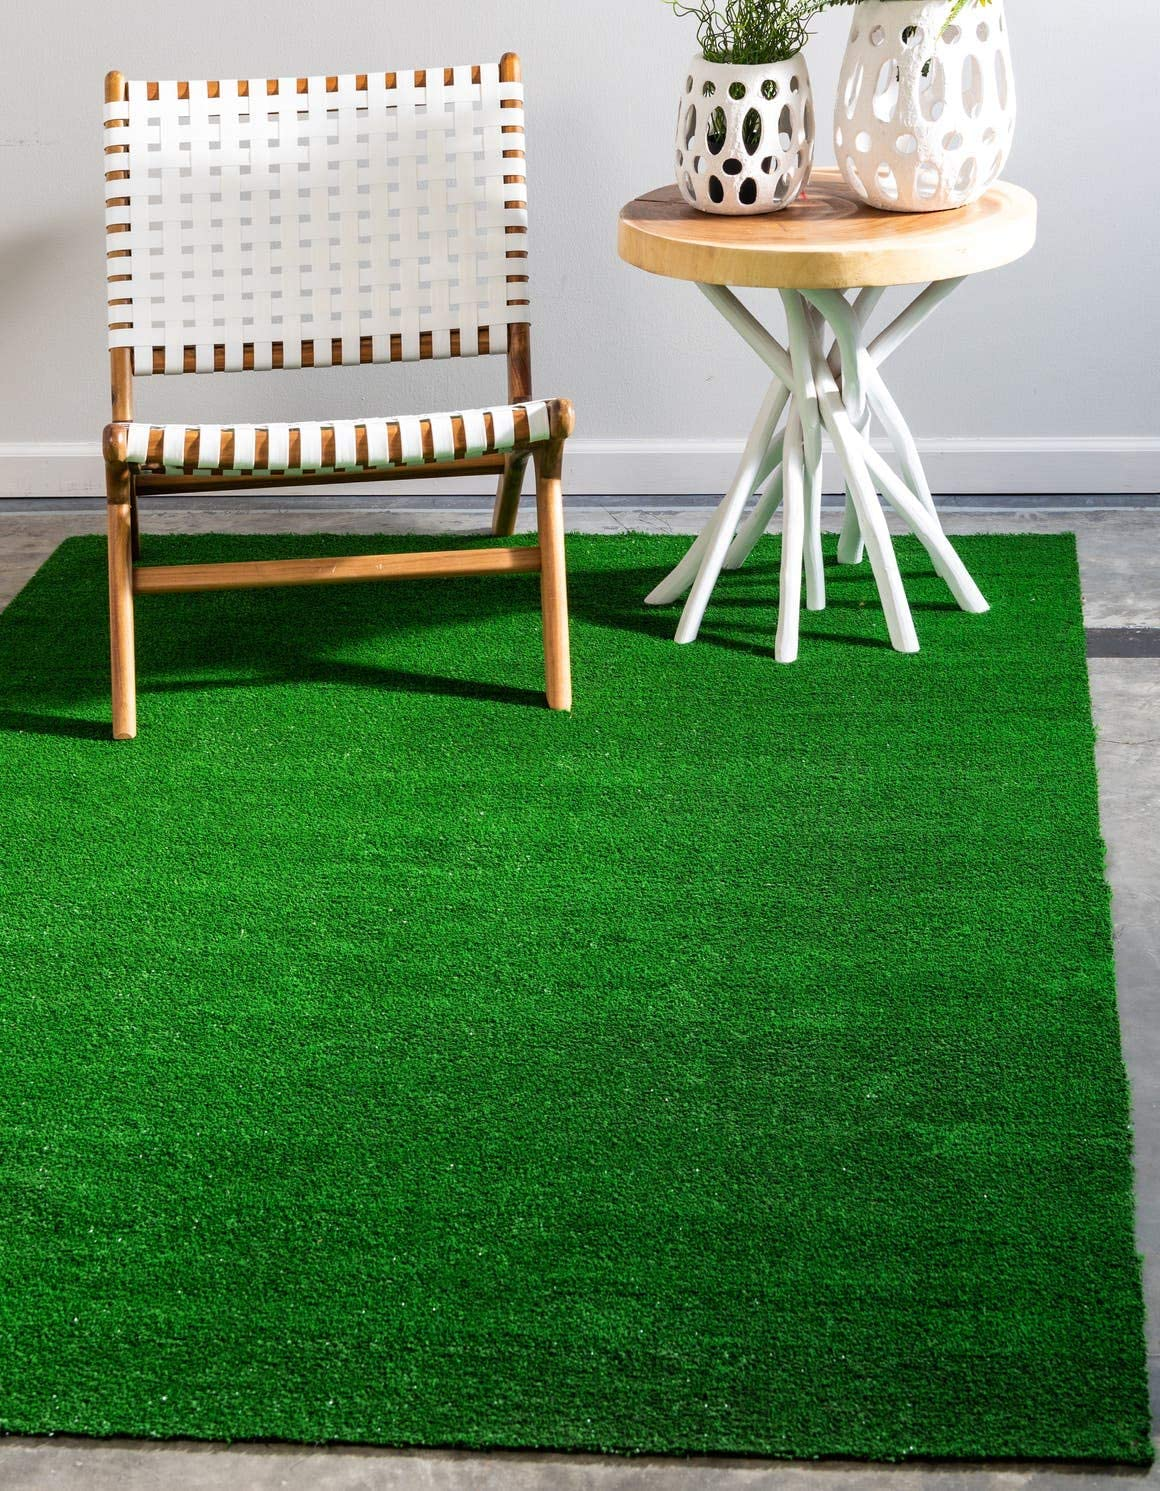 Unique Loom Outdoor Grass Collection Modern Transitional Indoor and Outdoor Flatweave Green Area Rug 9 0 x 12 0